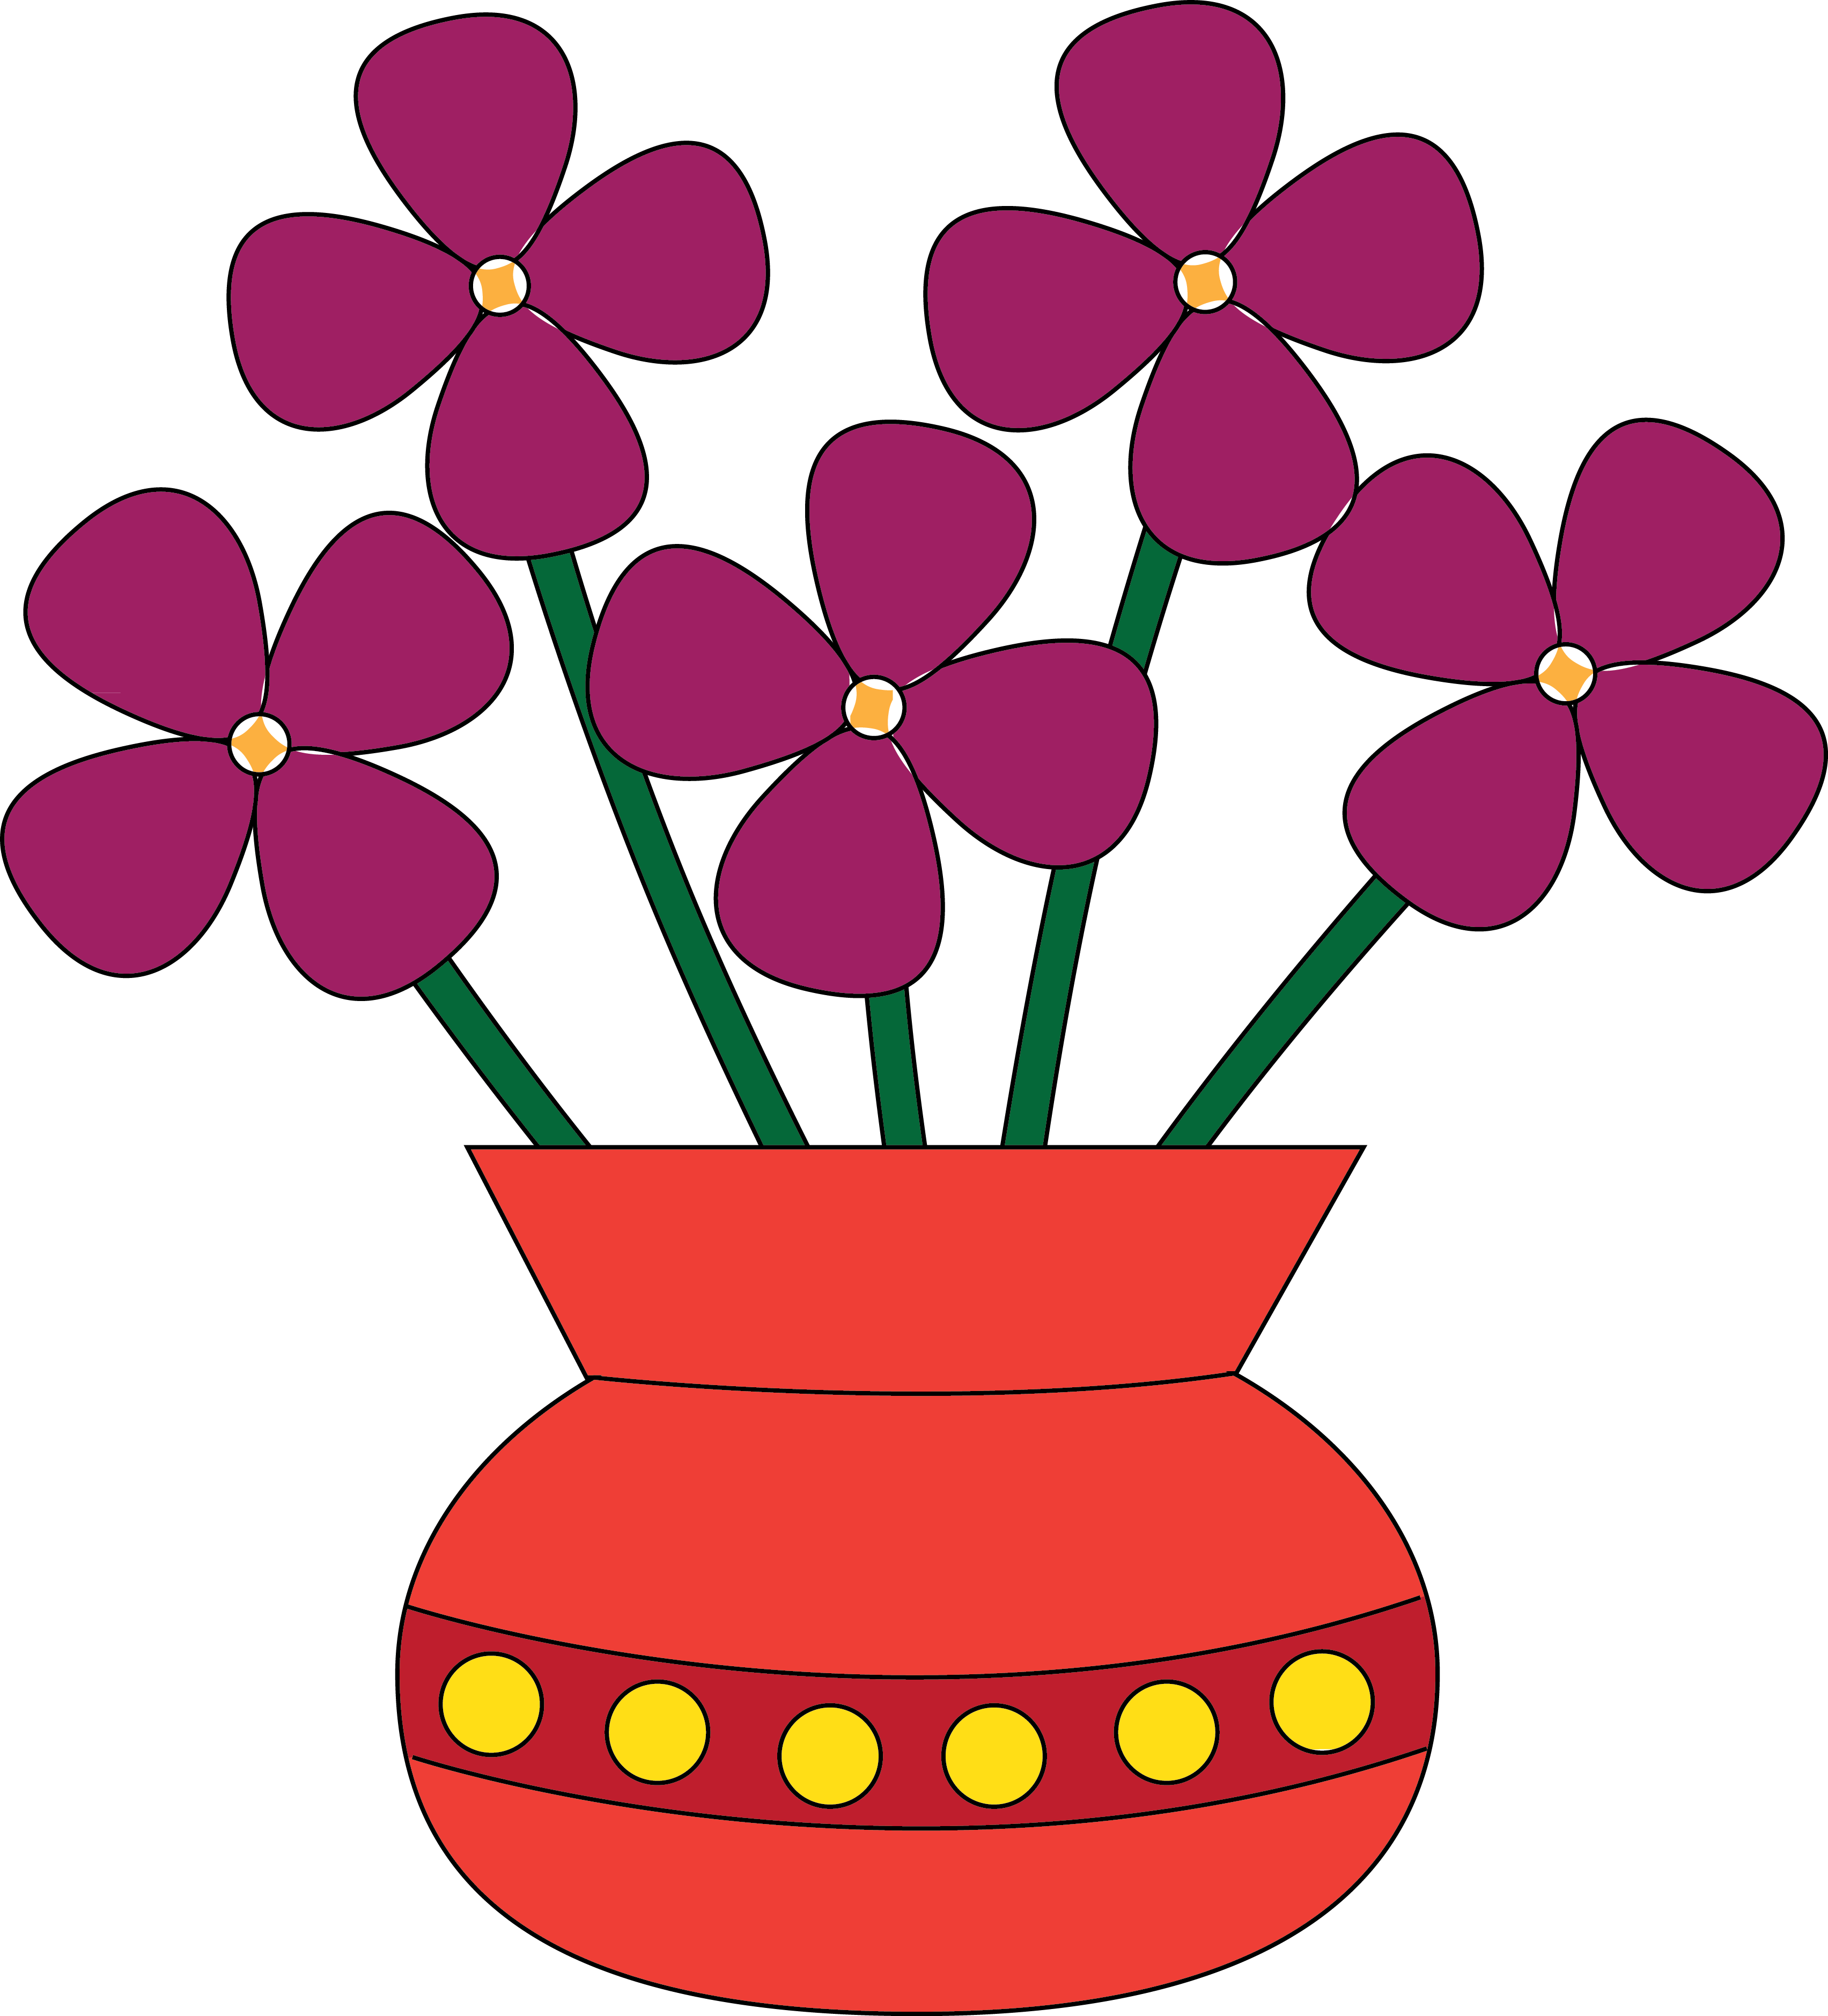 Vase clipart #5, Download drawings